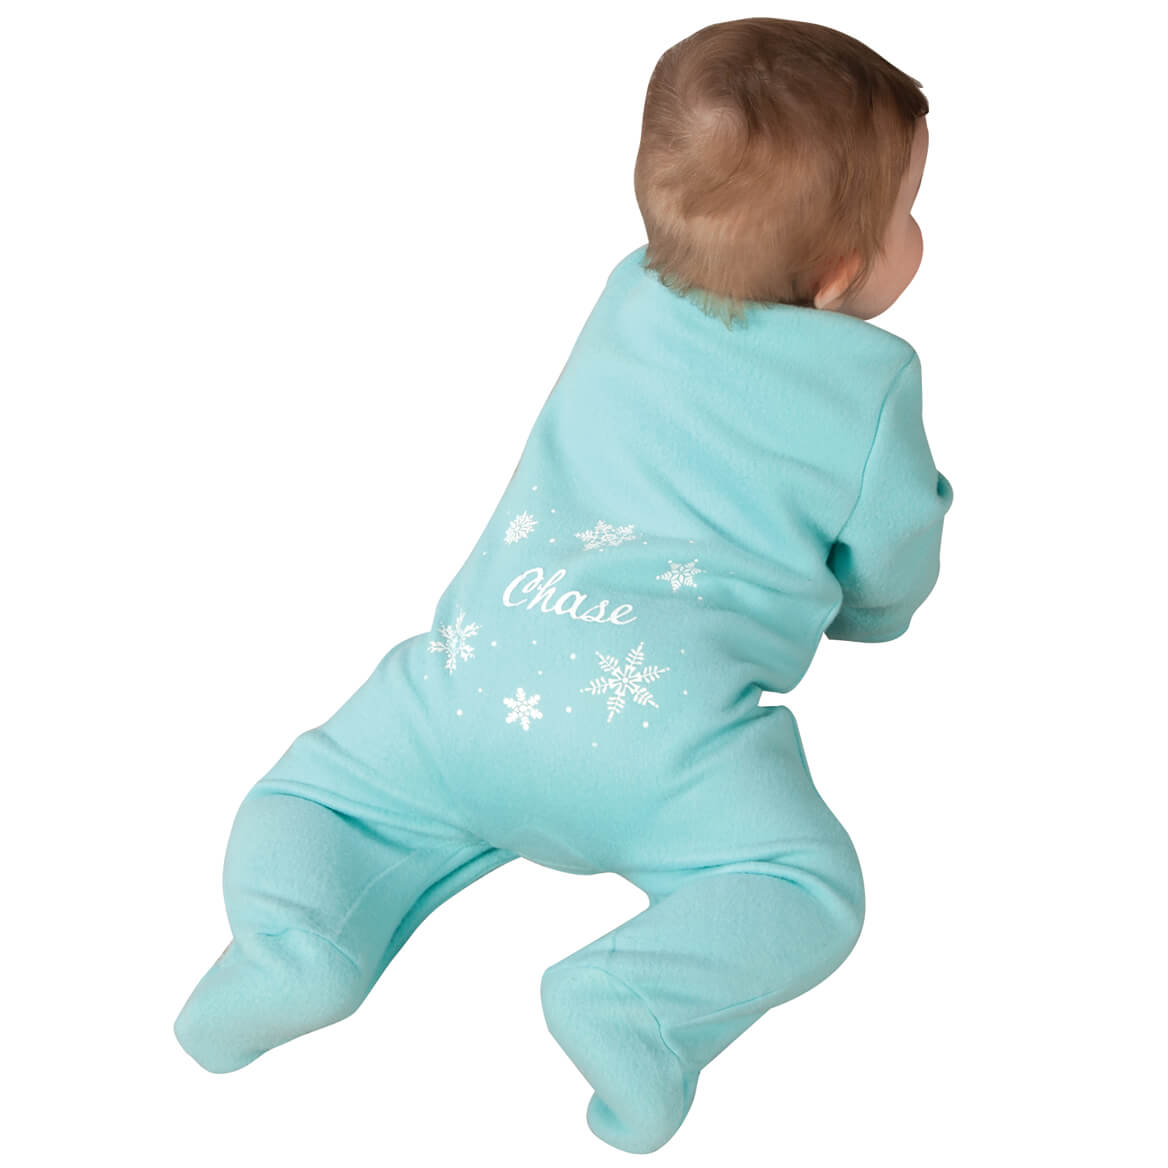 Personalized Snowflake Longjohns